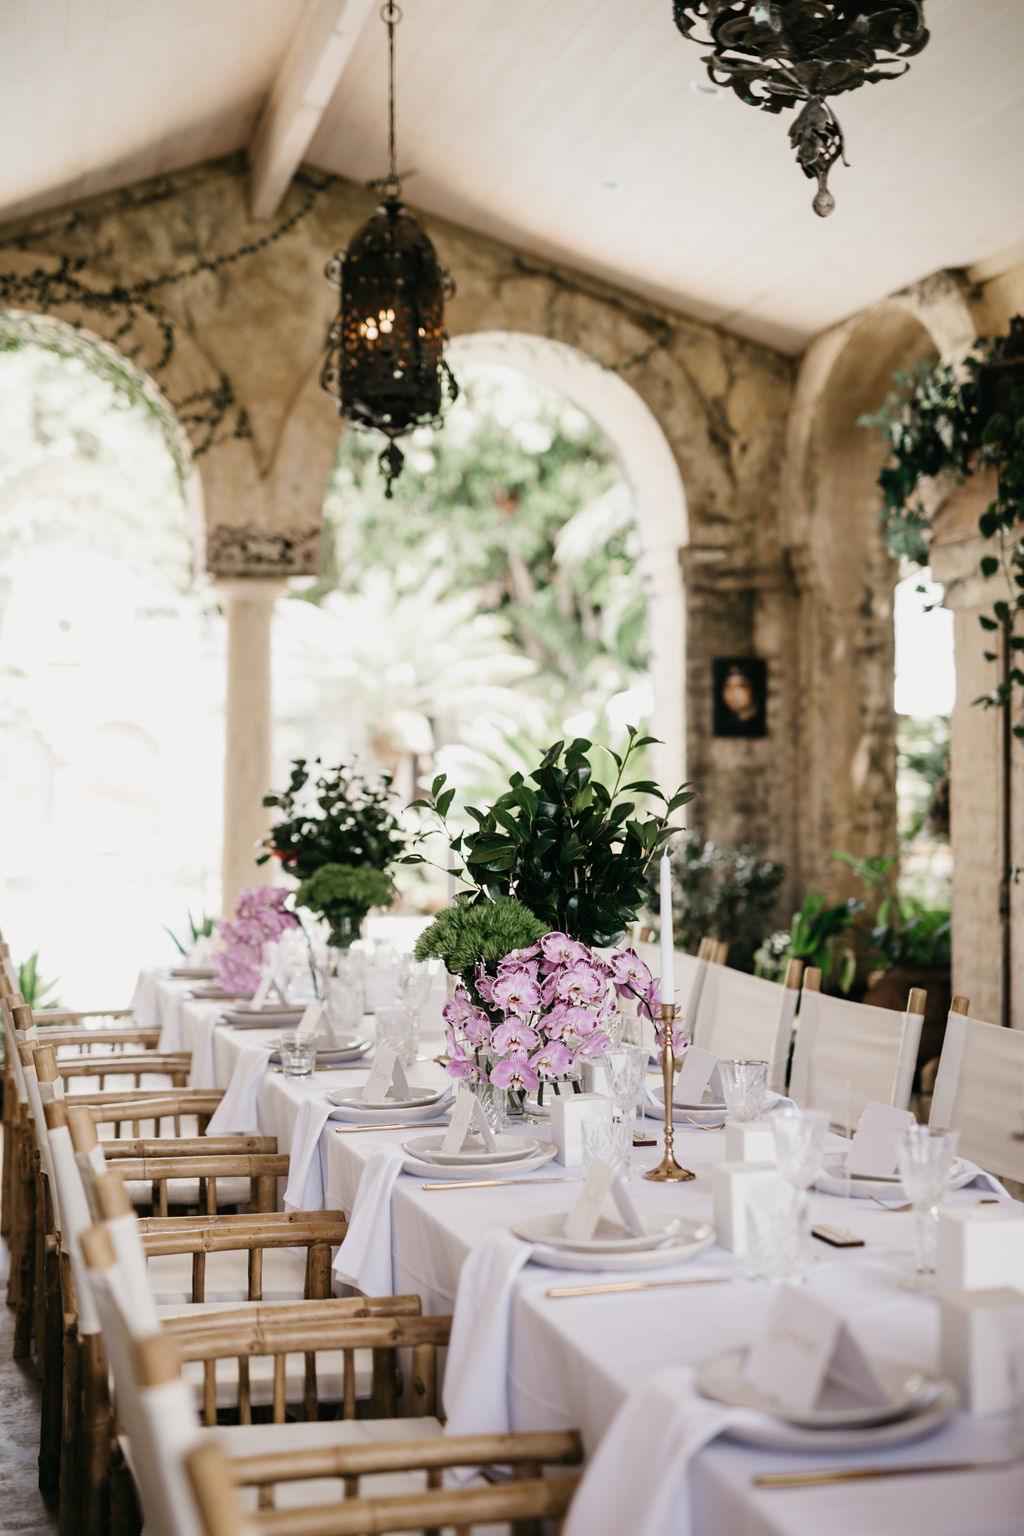 Reception table set up with flowers in rustic building / wedding photography